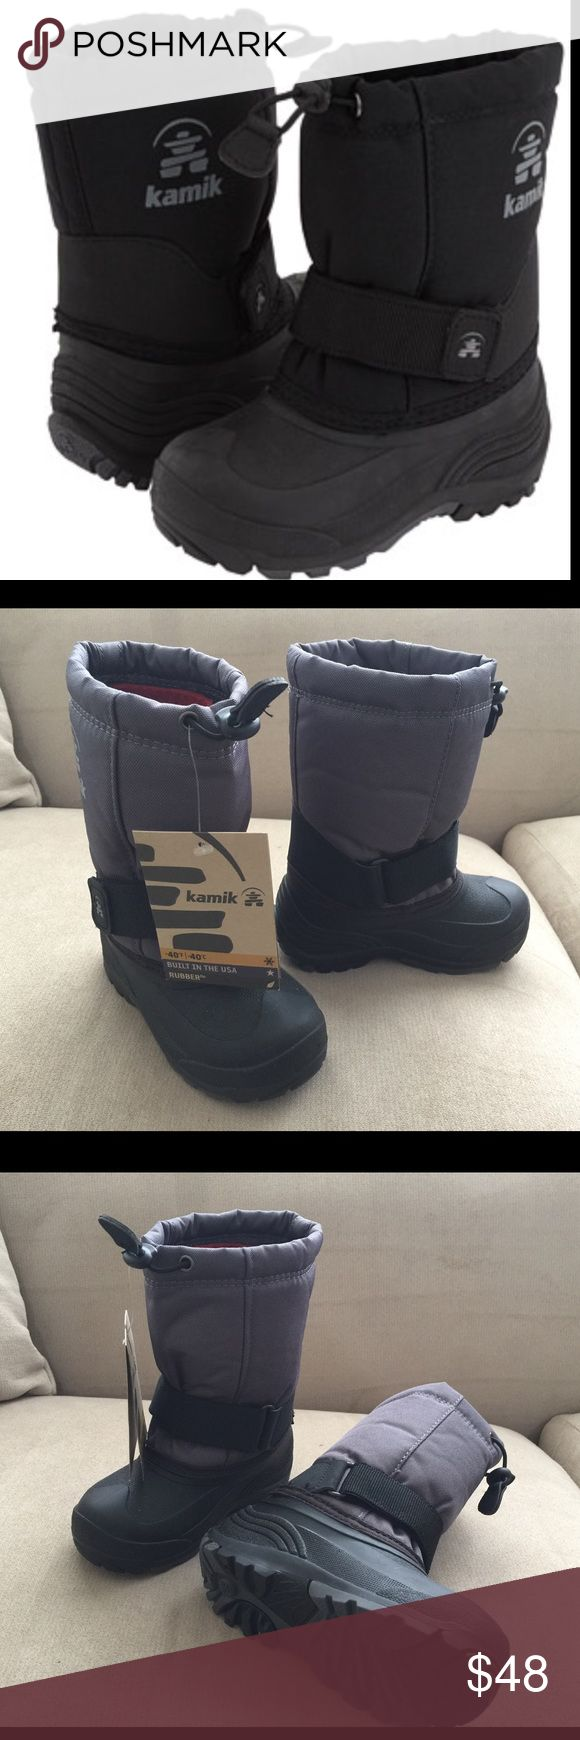 Kamik winter boots, brand New with Tag, size 10 Waterproof and flexible synthetic rubber boot, made in USA Kamik Shoes Rain & Snow Boots